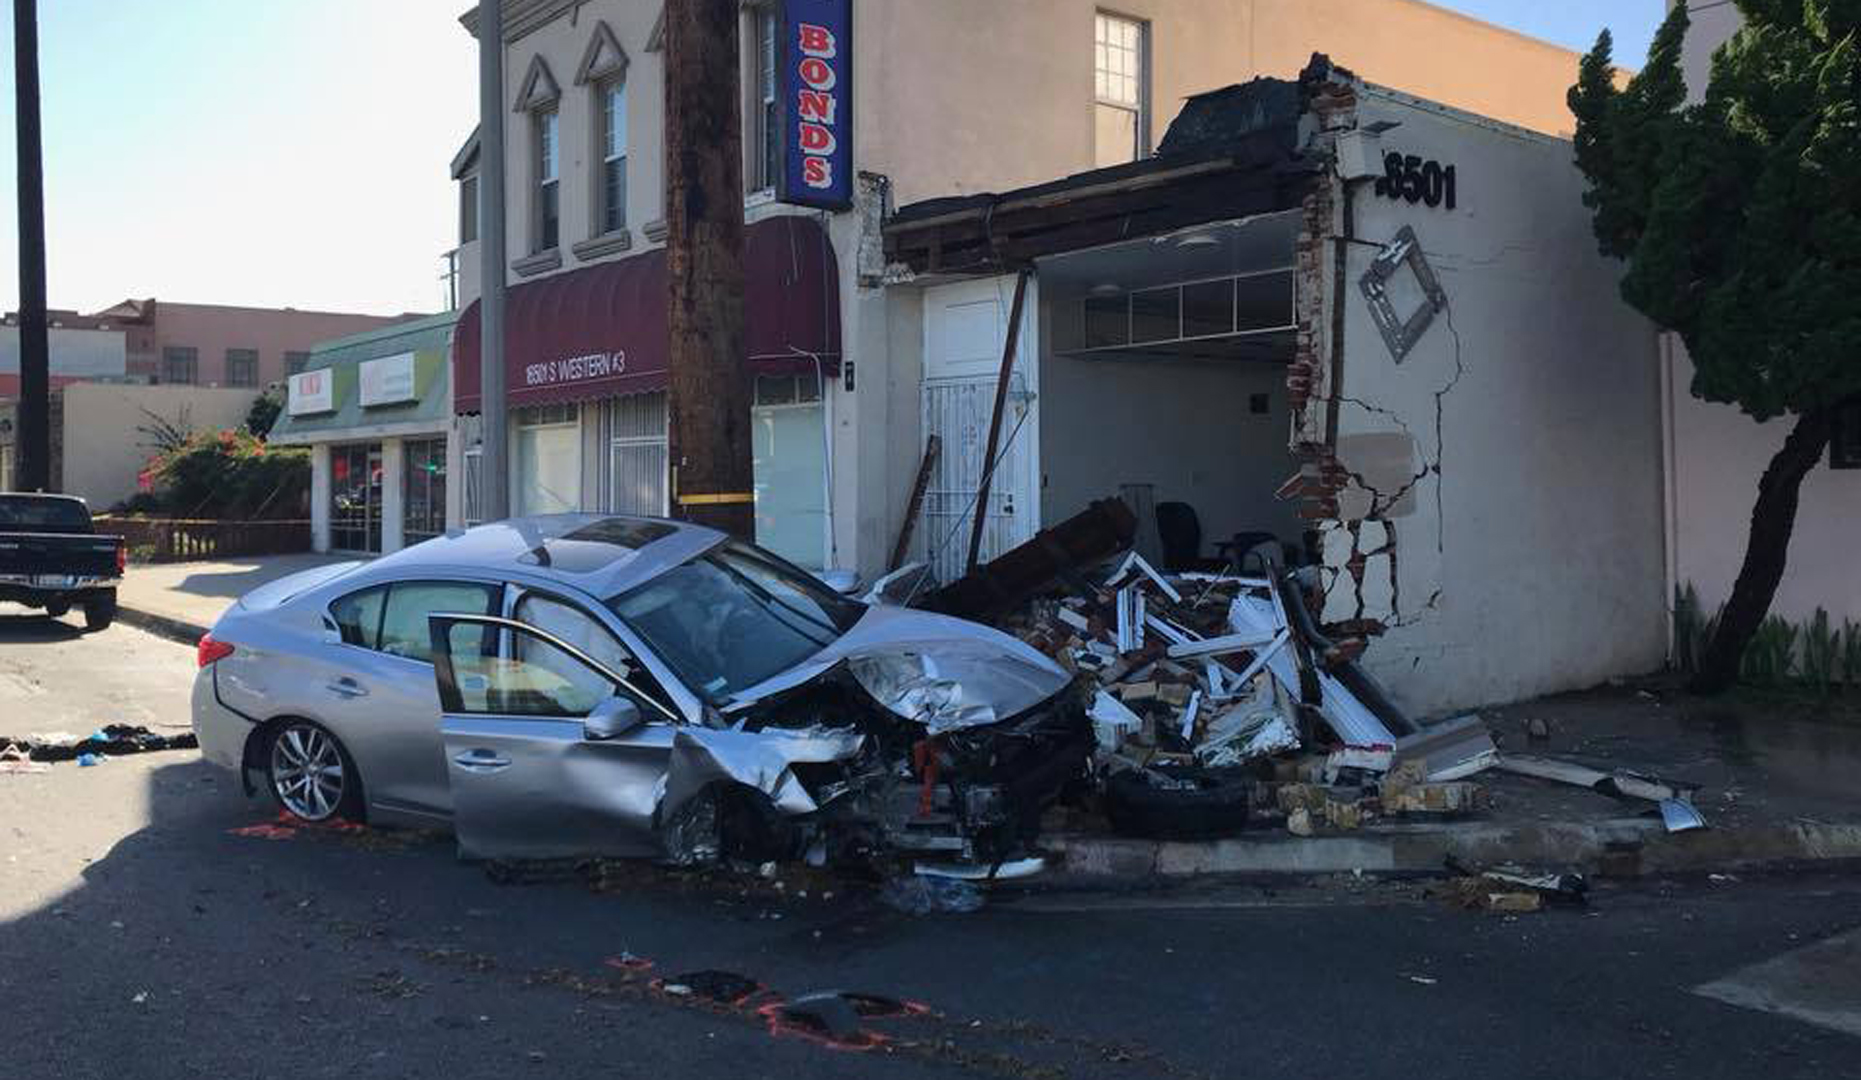 Gardena police released this photo of the crash scene on Dec. 21, 2017.